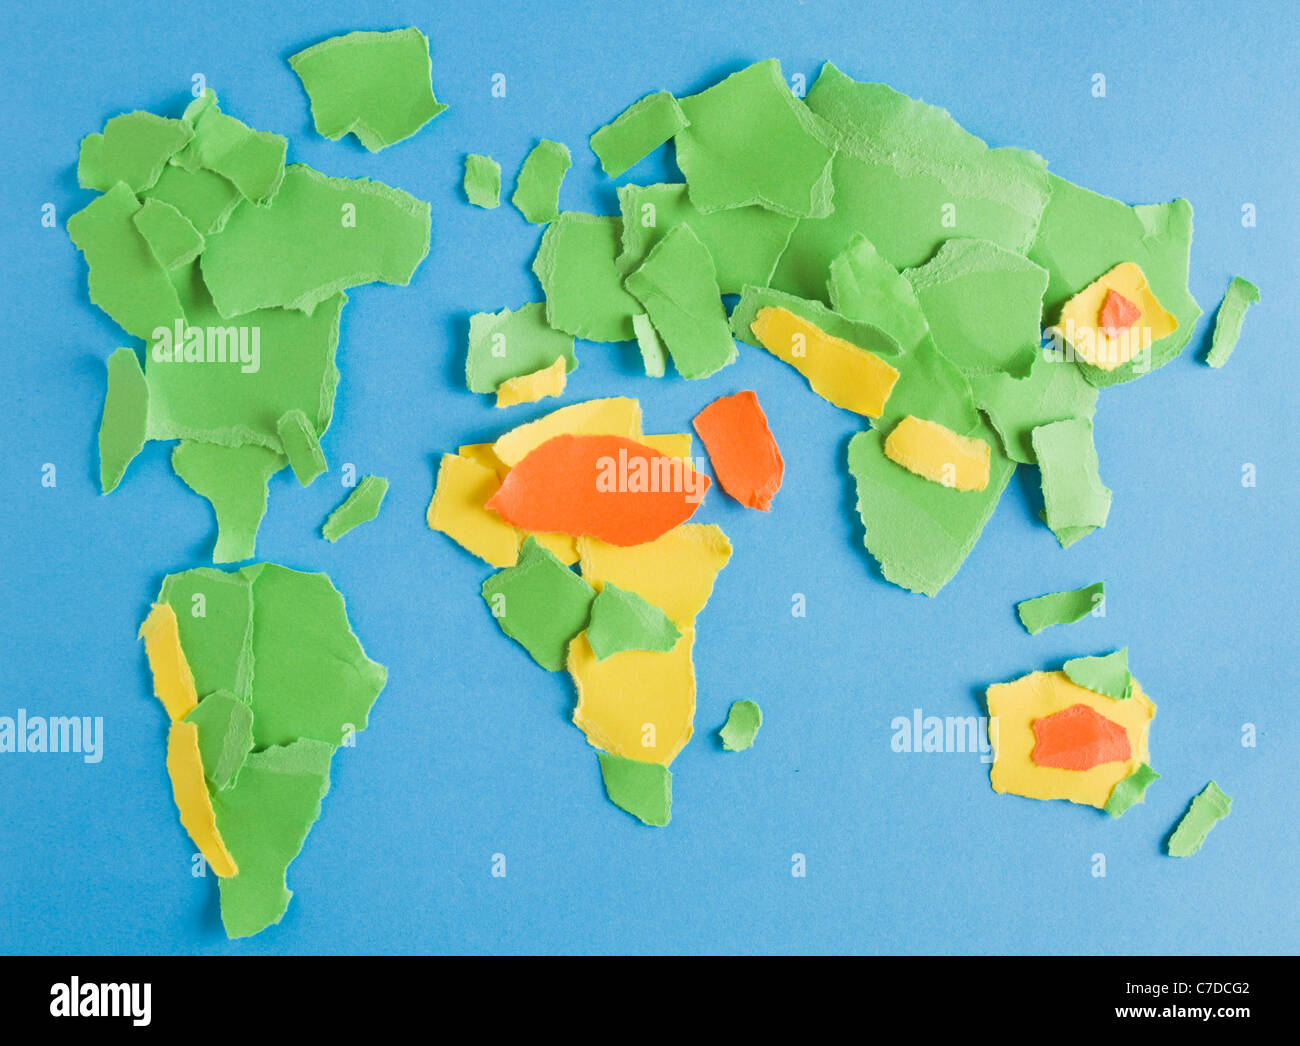 Deserts Of The World Map Stock Photos & Deserts Of The World ...